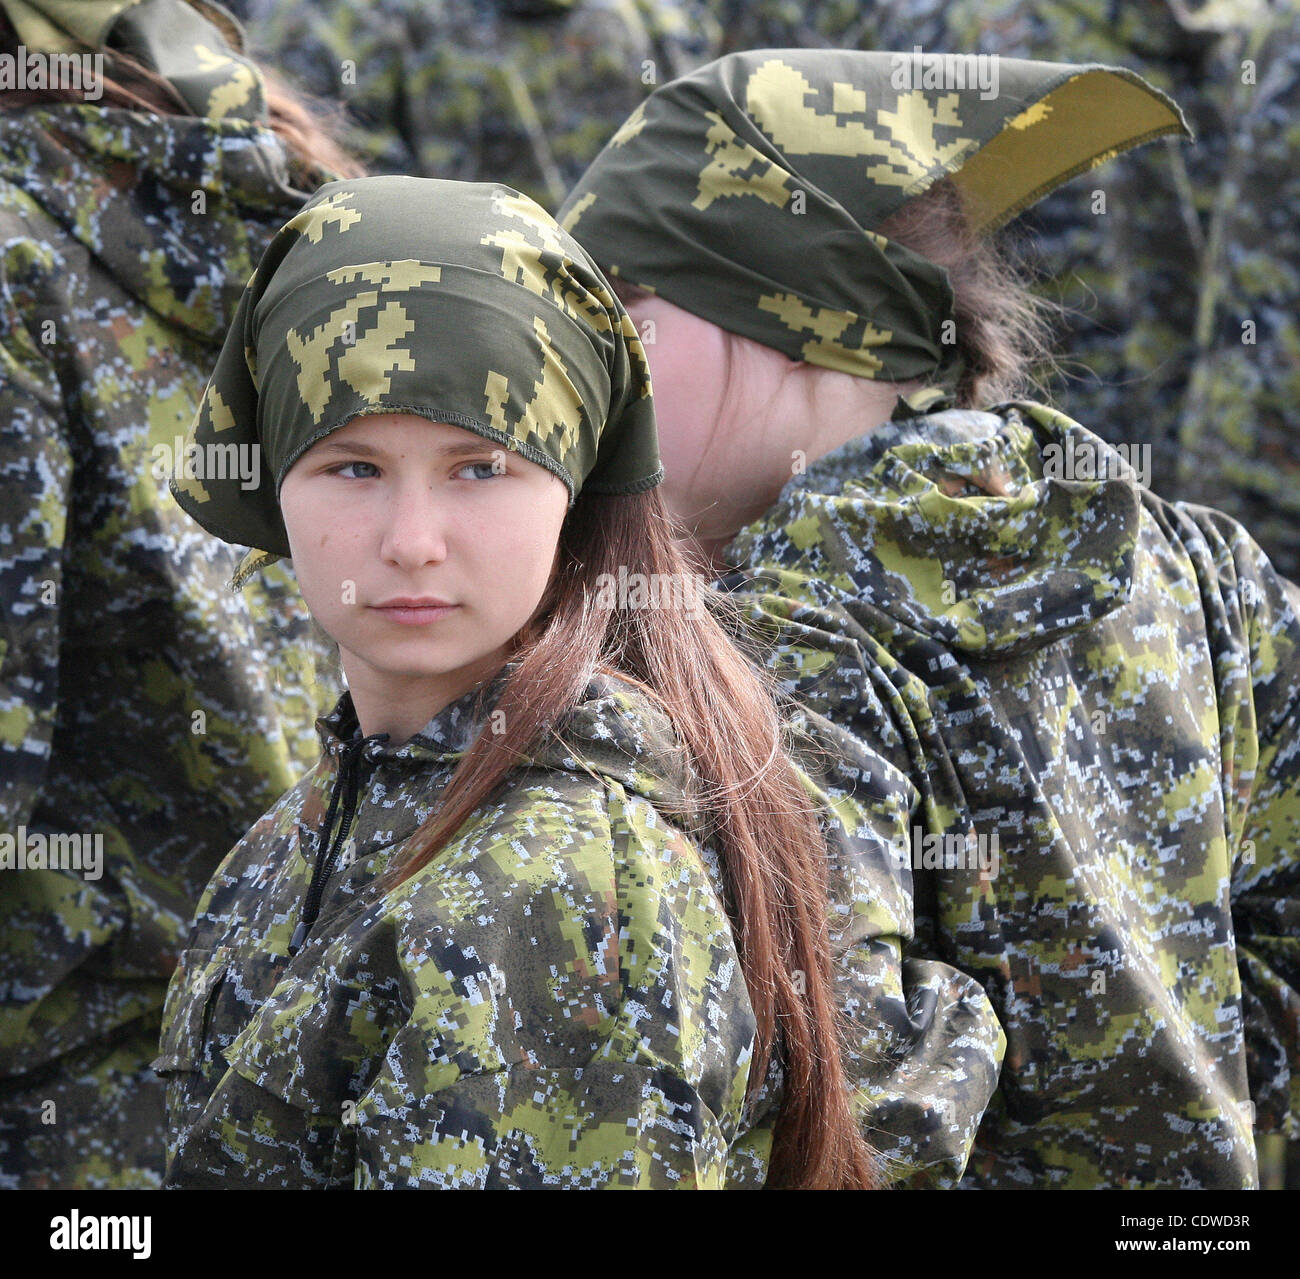 Army Pin Up Girl Wallpaper Russian Teenagers Are Getting Military Skills During The